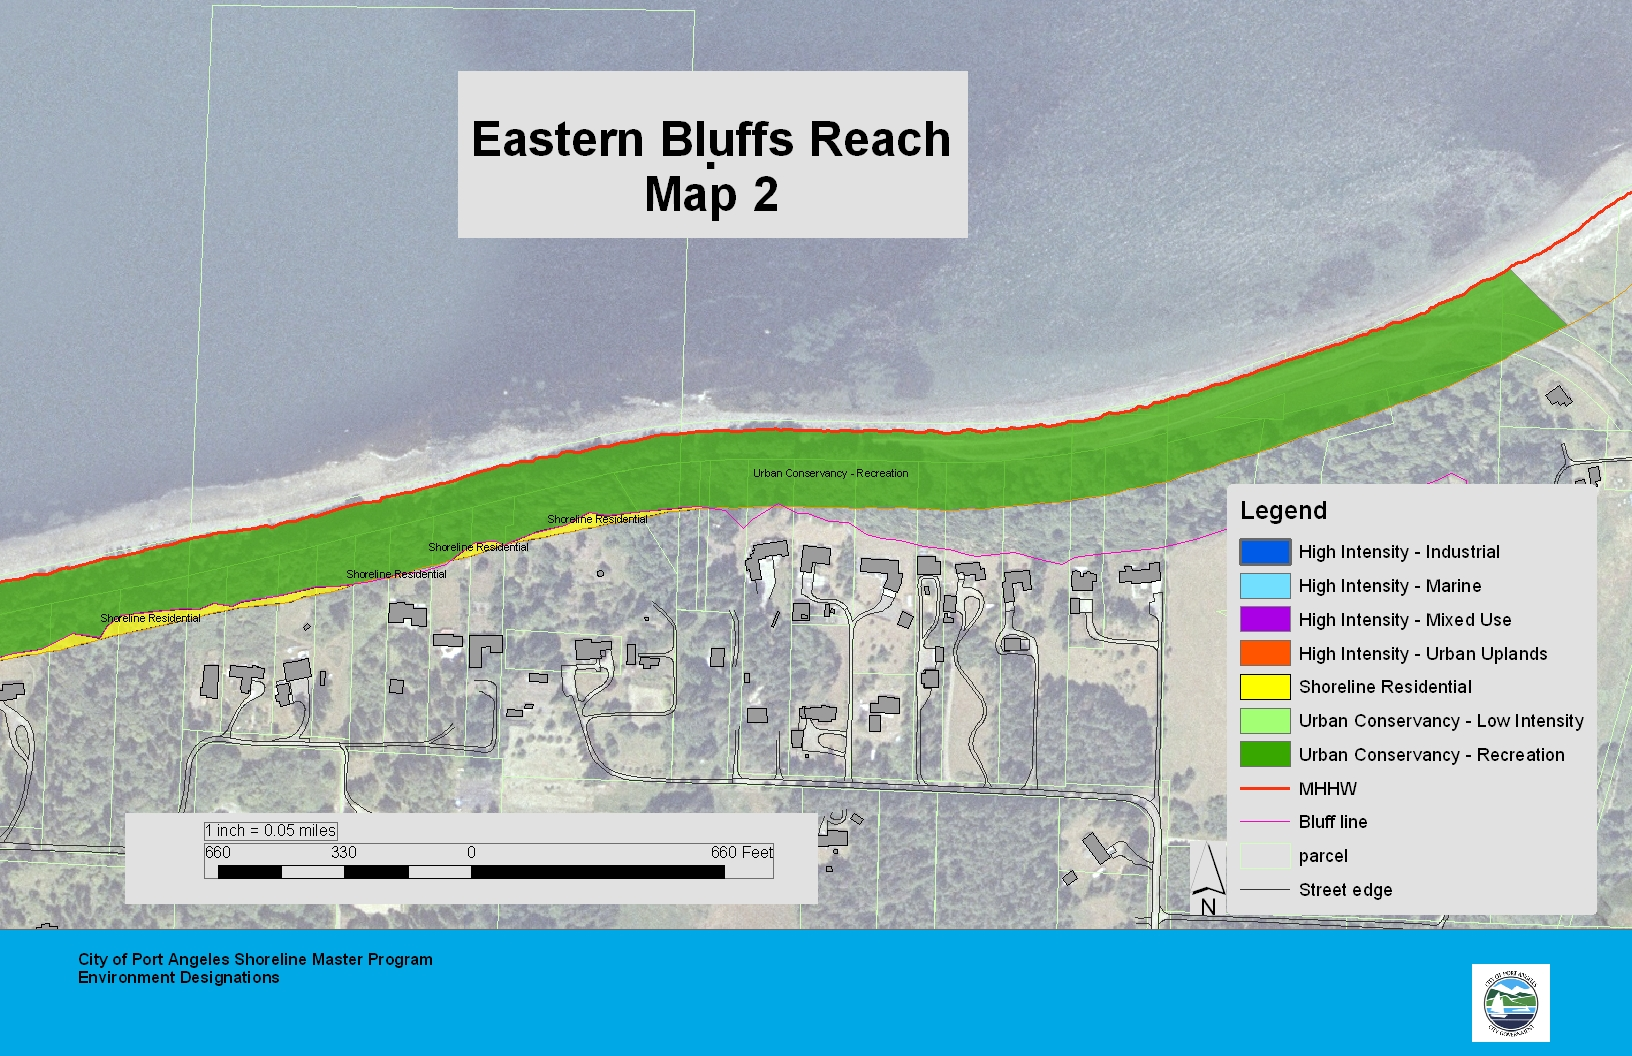 Eastern Bluffs Reach Map 2